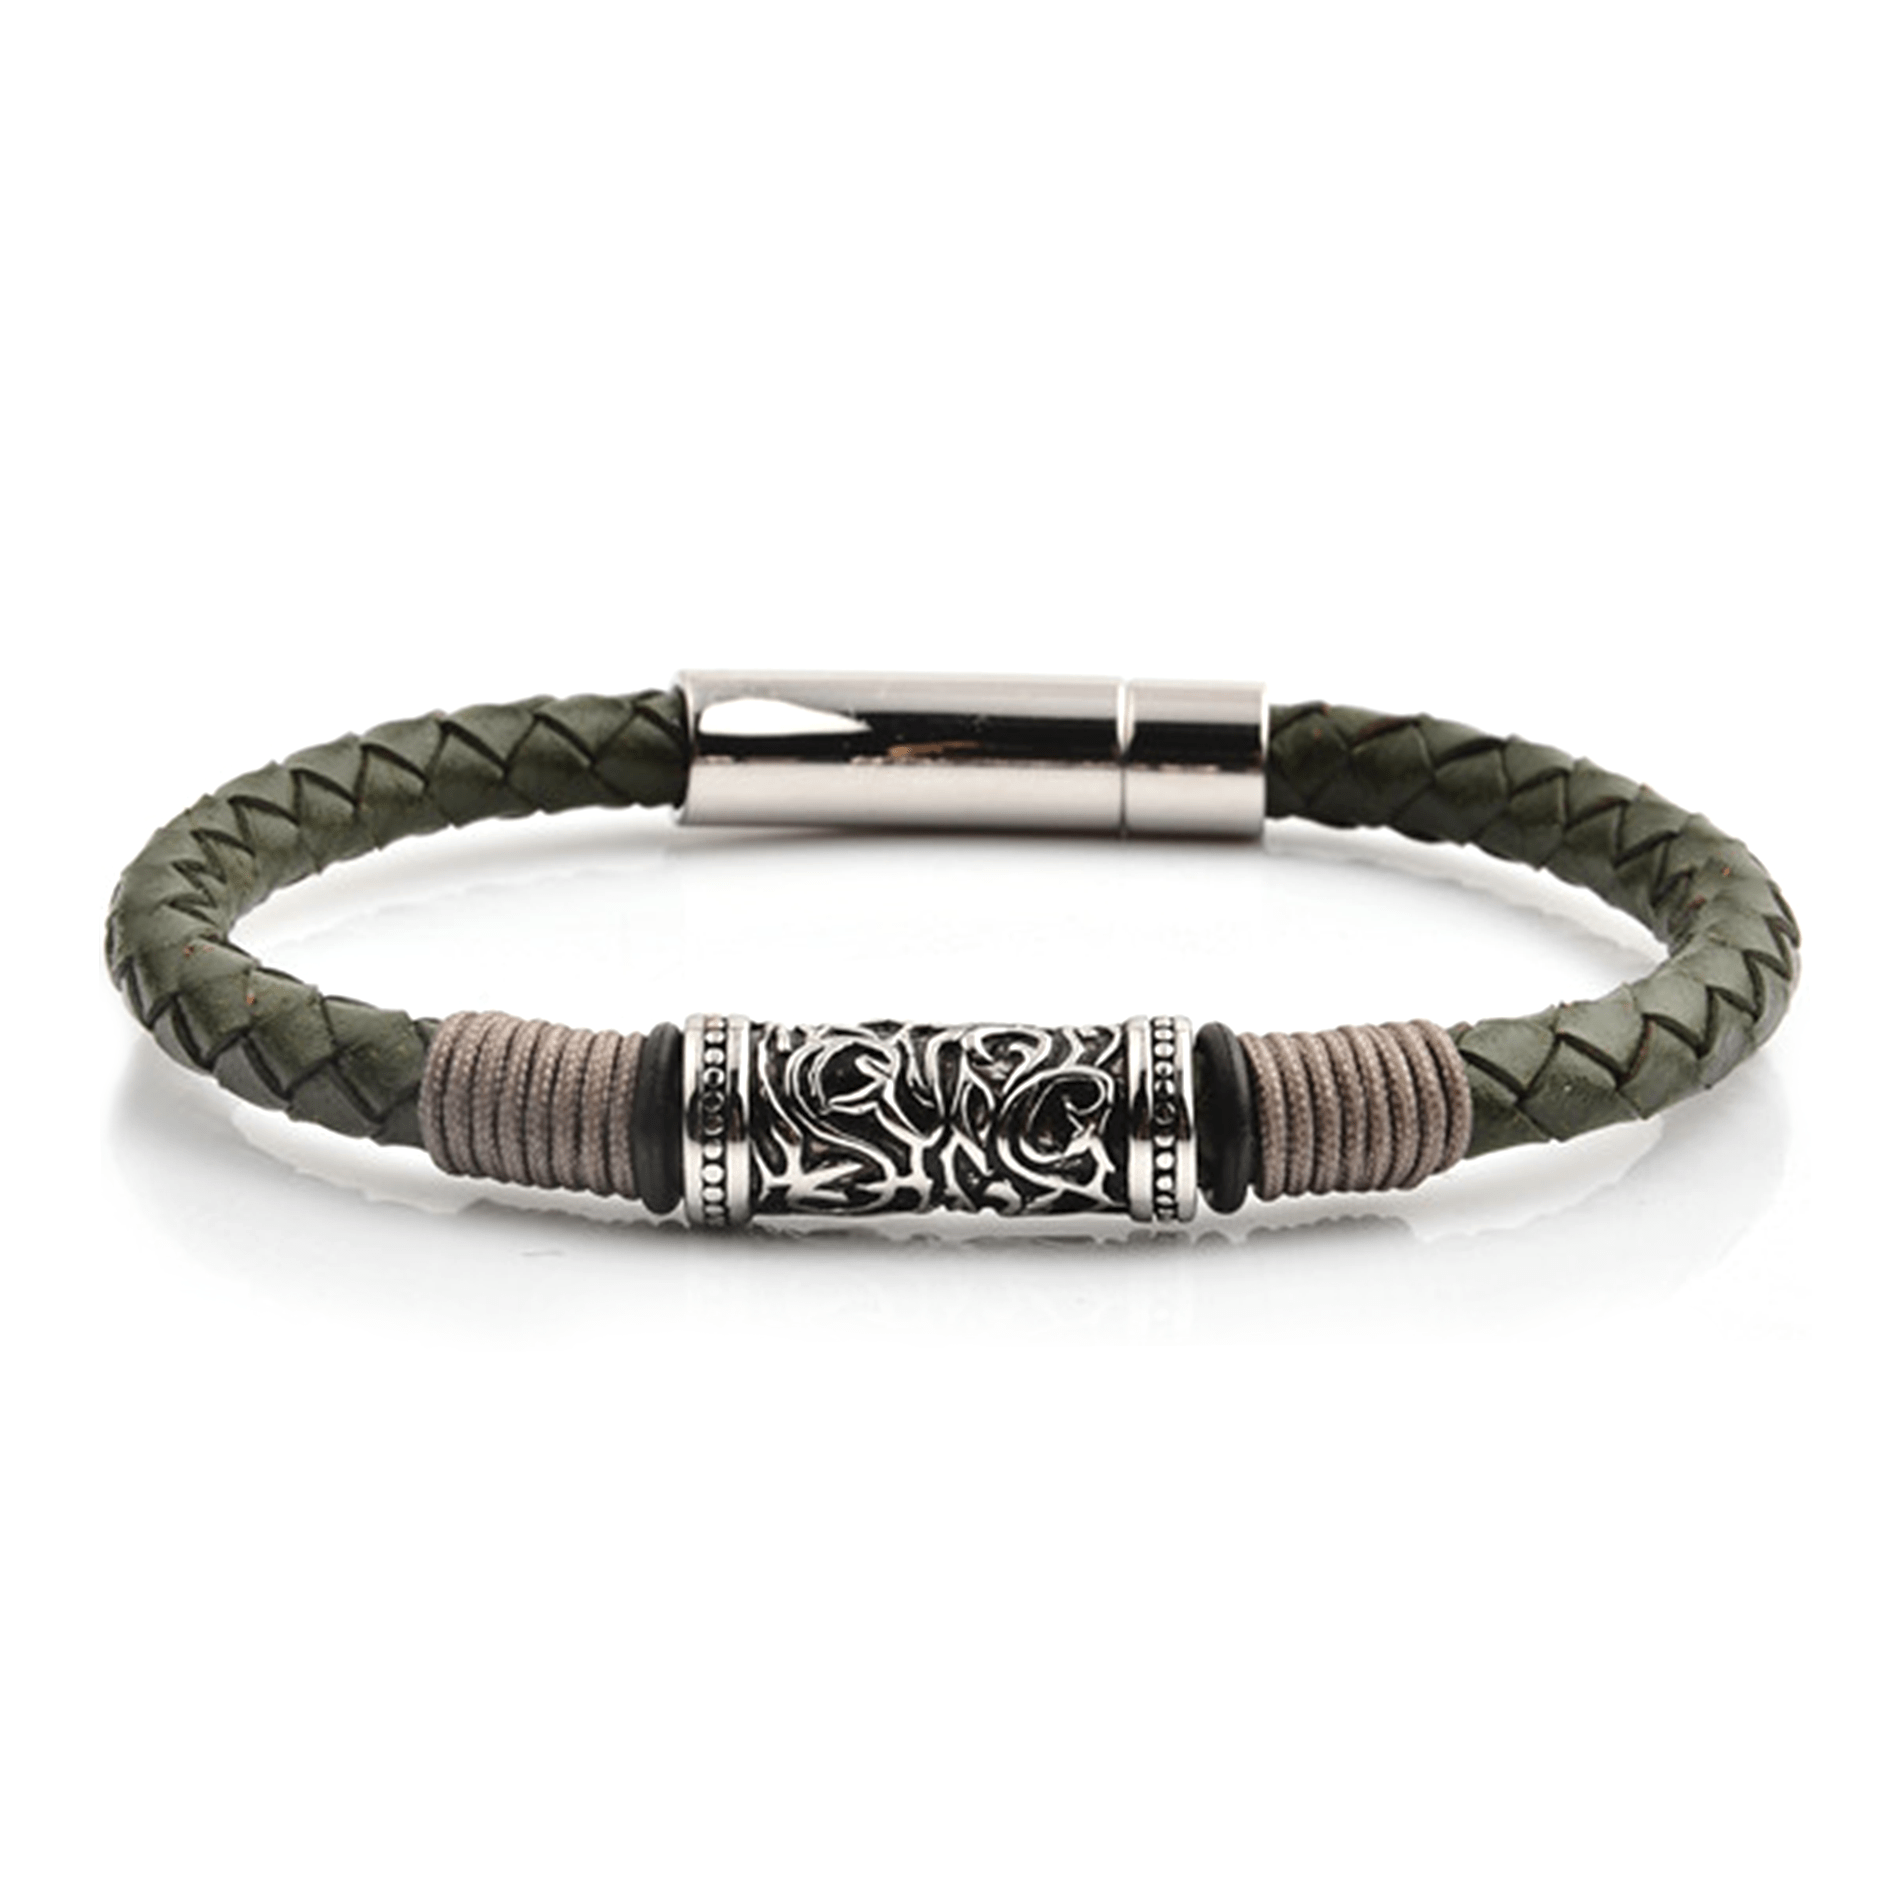 HYLIZO Nelore Series 004 - Green Leather bracelet with 316 Stainless Steel Engraving and Stainless steel Clasp